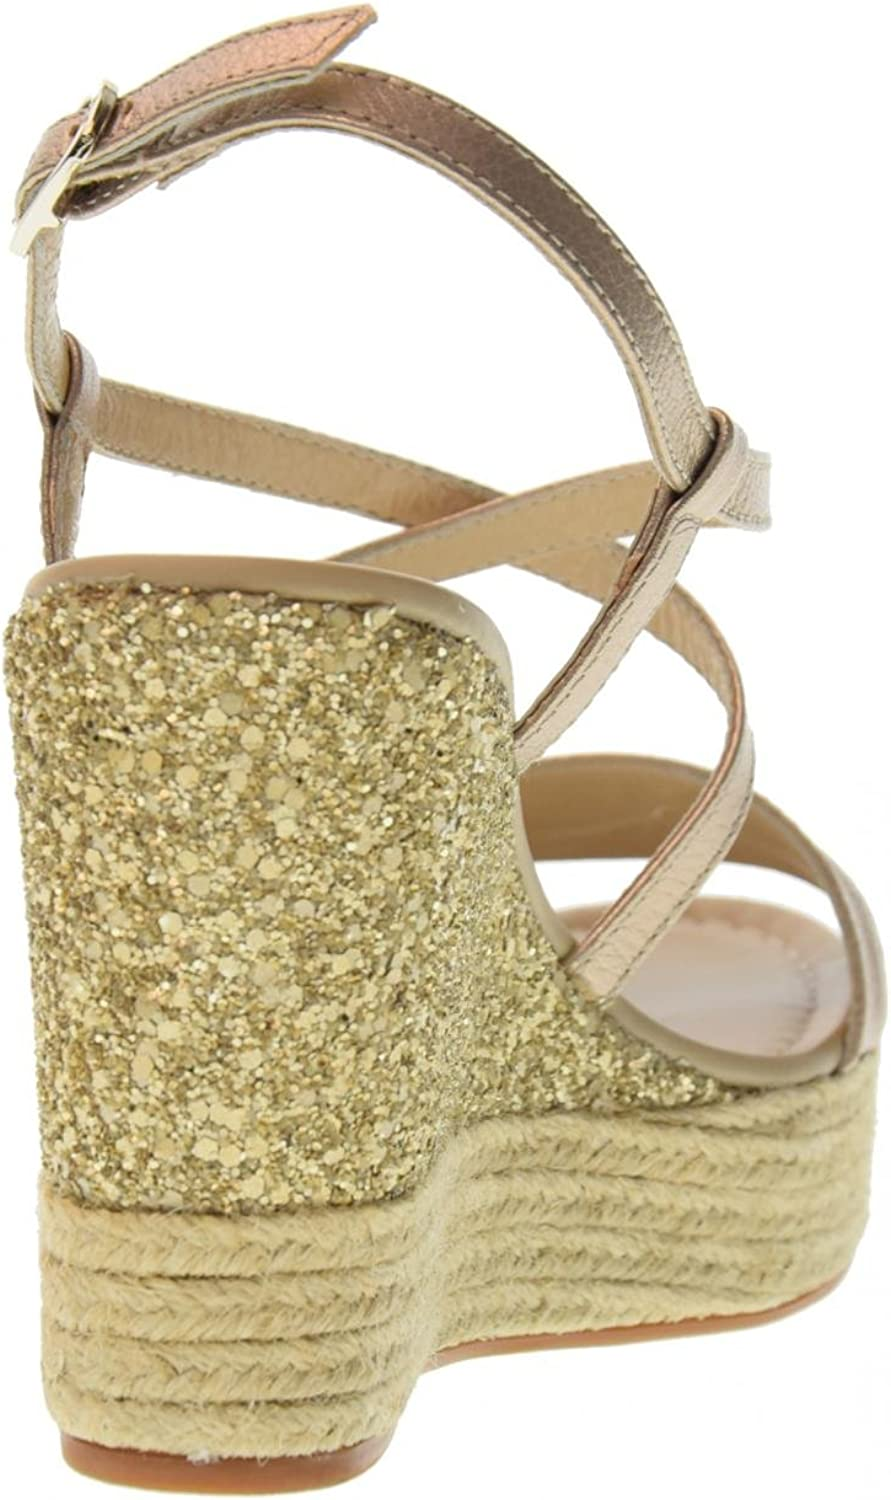 Nero Giardini Womens Shoes Wedge Sandals P805891D//672